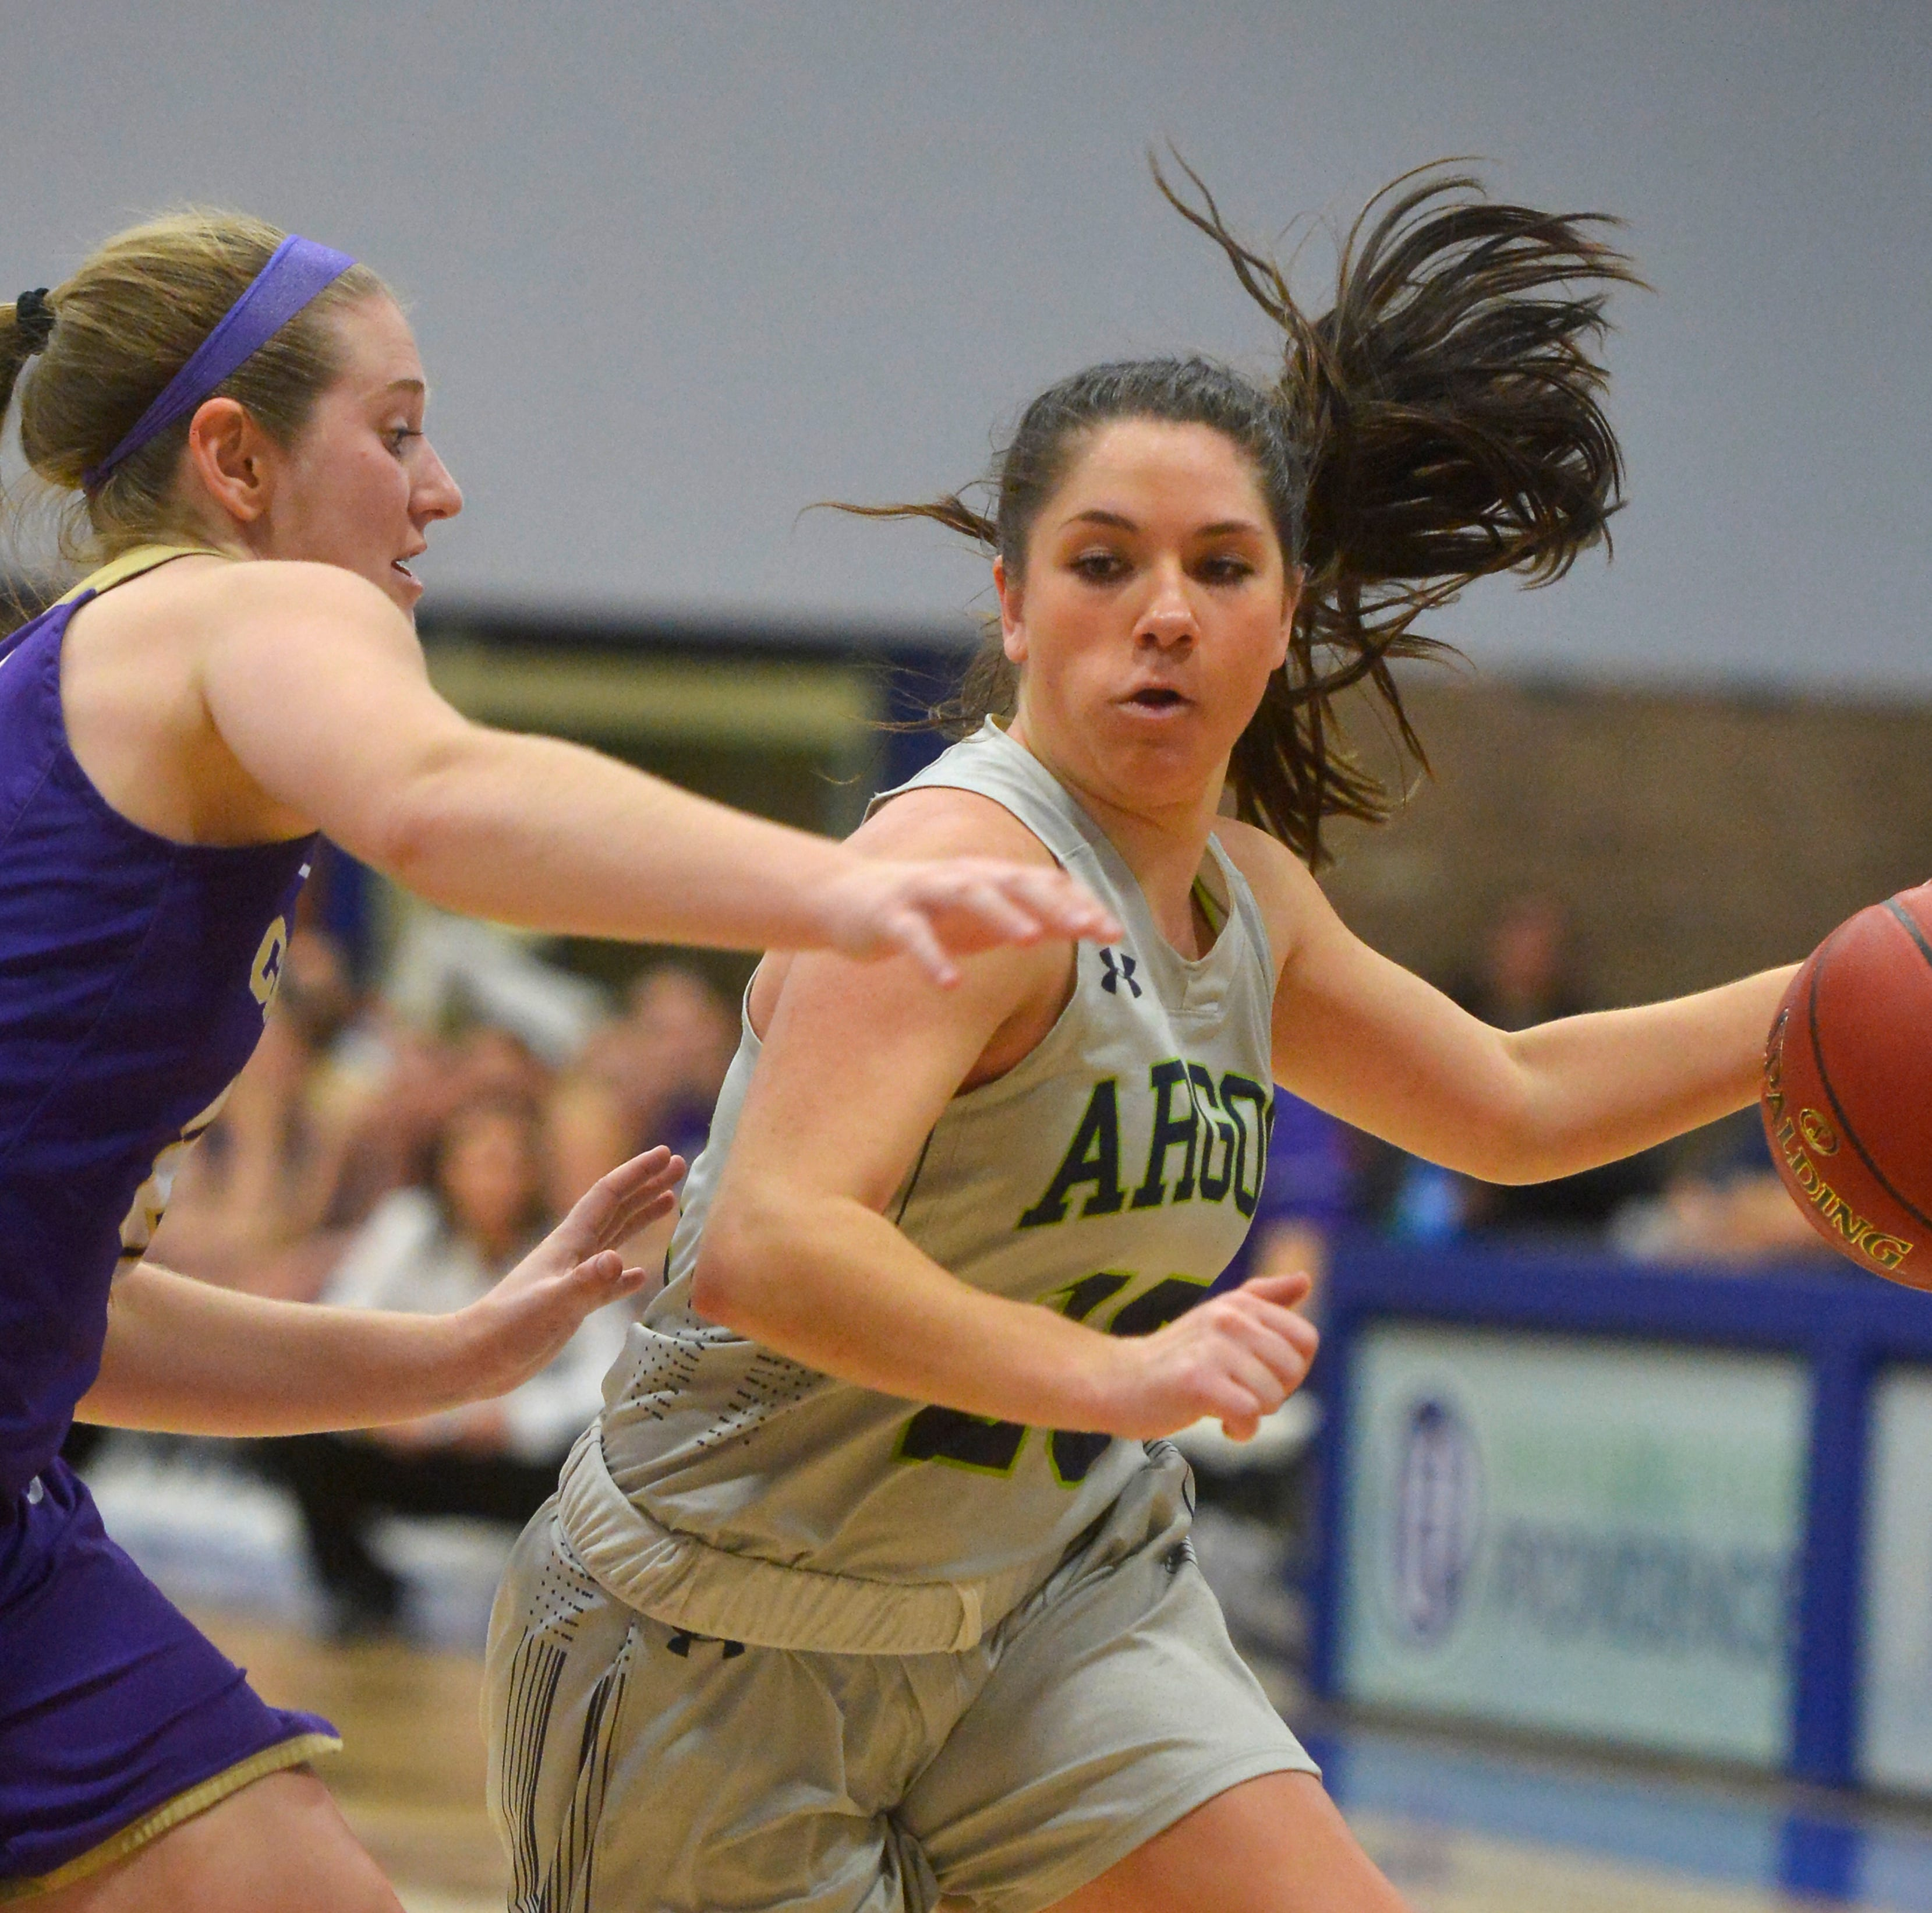 UP women picked for NAIA national tournament